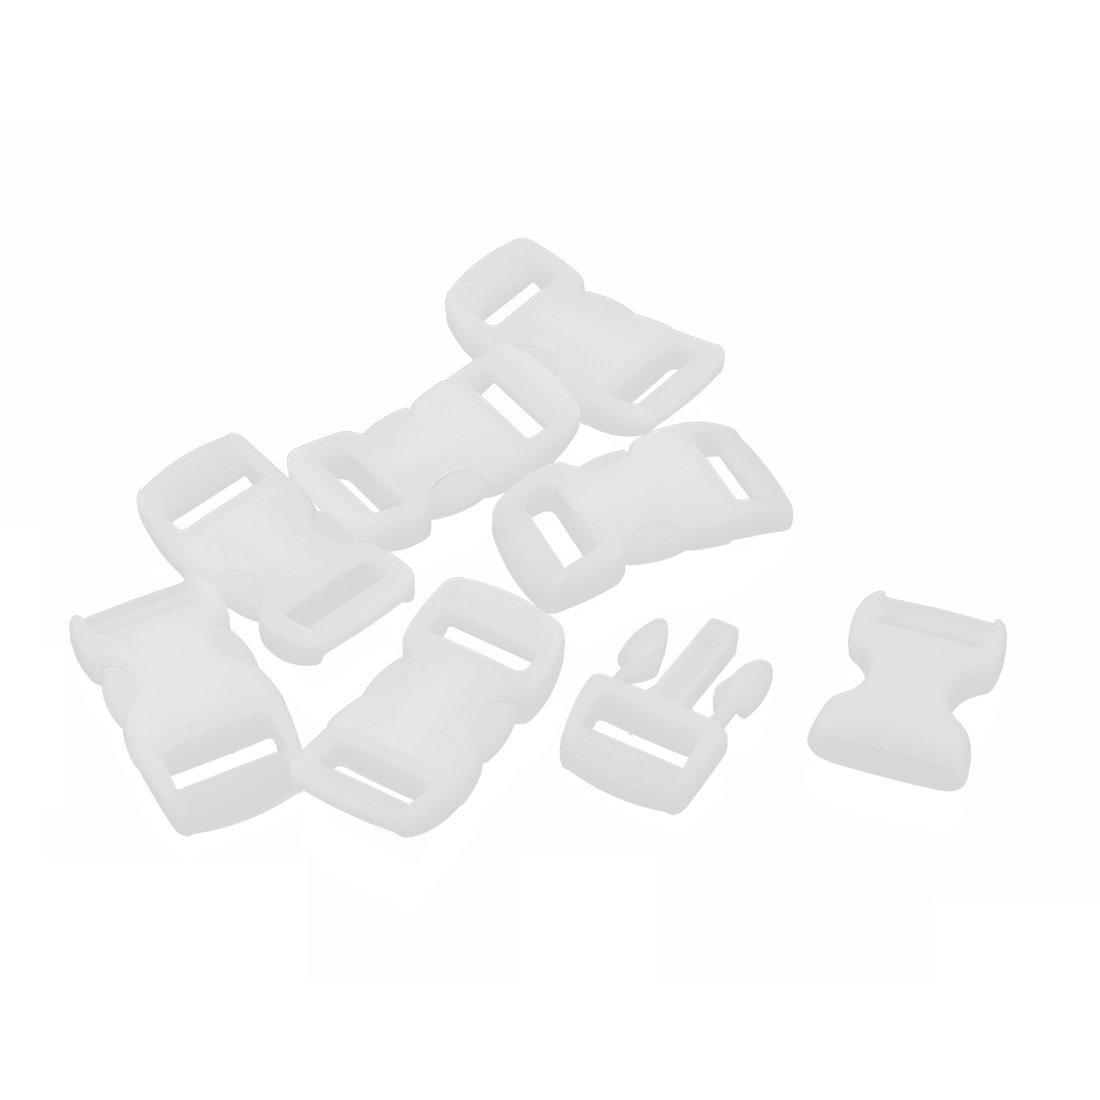 7 Pcs 11mm Width White Plastic Backpack Rucksack Quick Release Buckle Clip